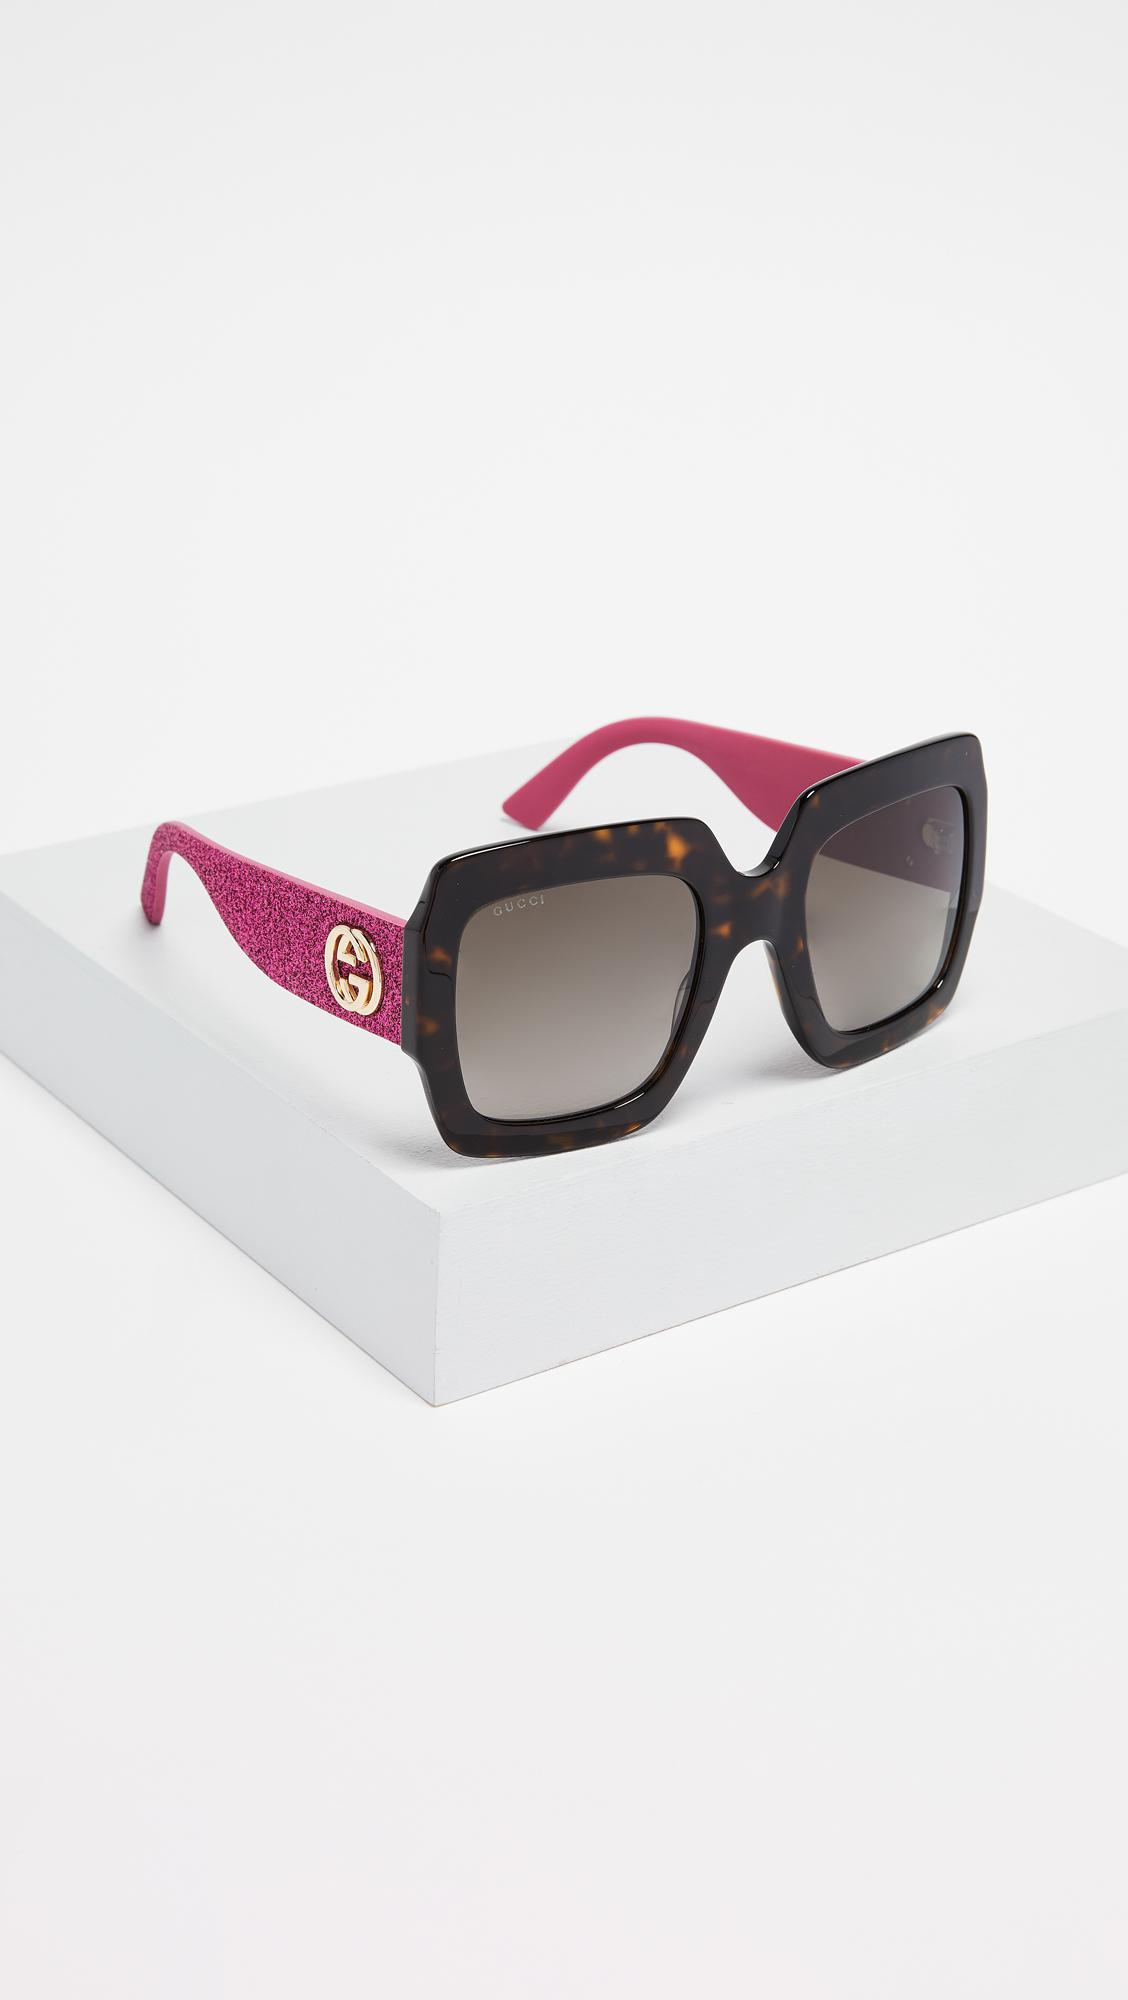 1f99c2c861 Gucci - Multicolor Pop Glitter Iconic Oversized Square Sunglasses - Lyst.  View fullscreen